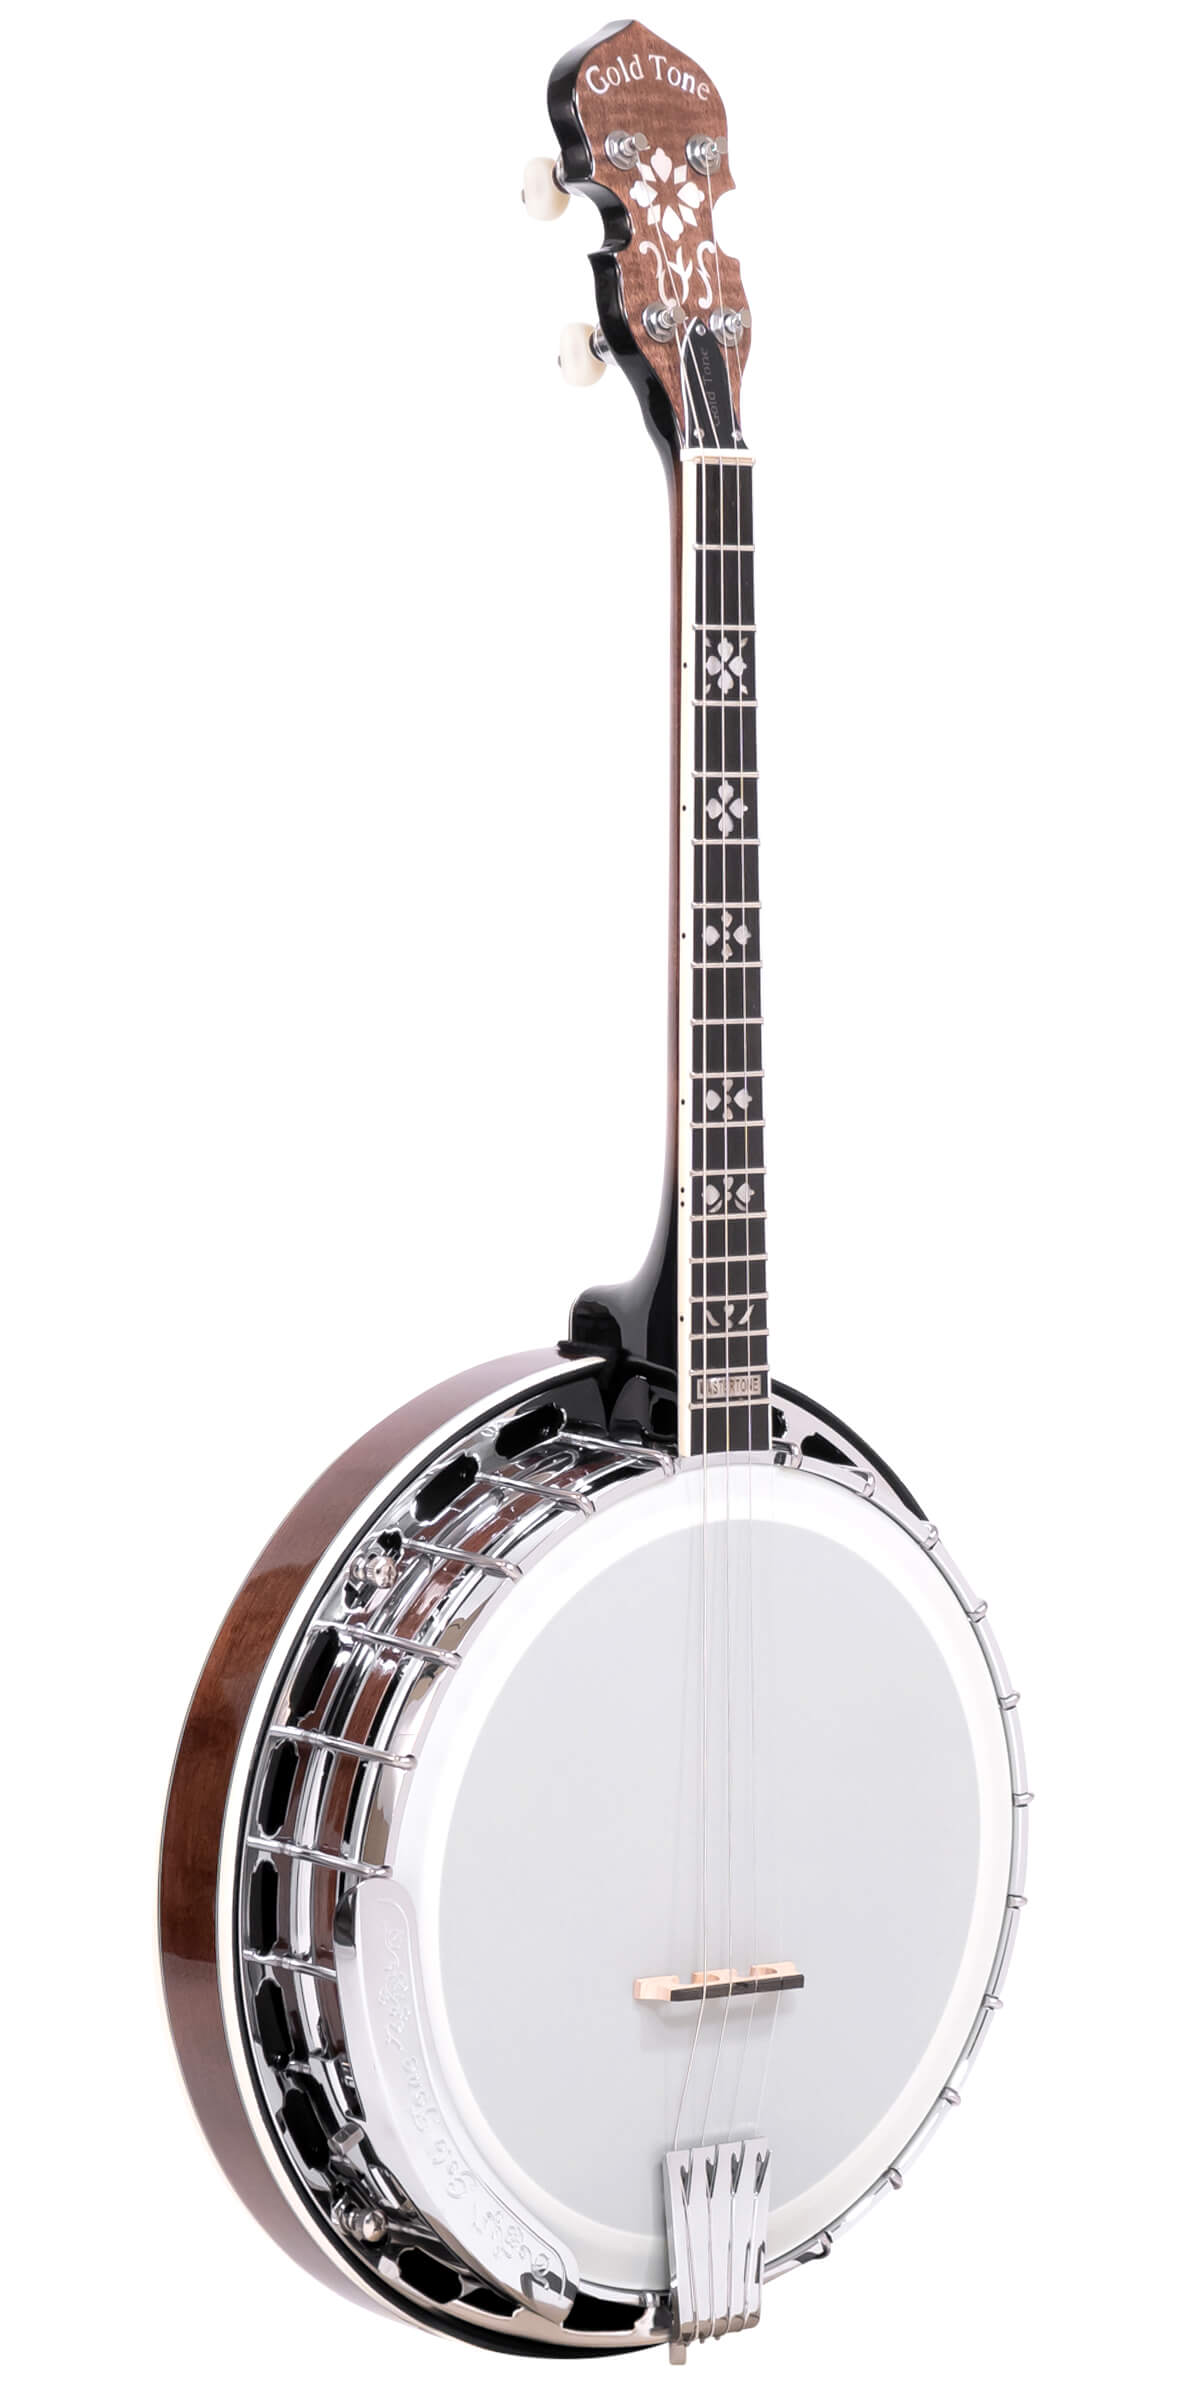 IT-250F: Irish Tenor Banjo with Flange